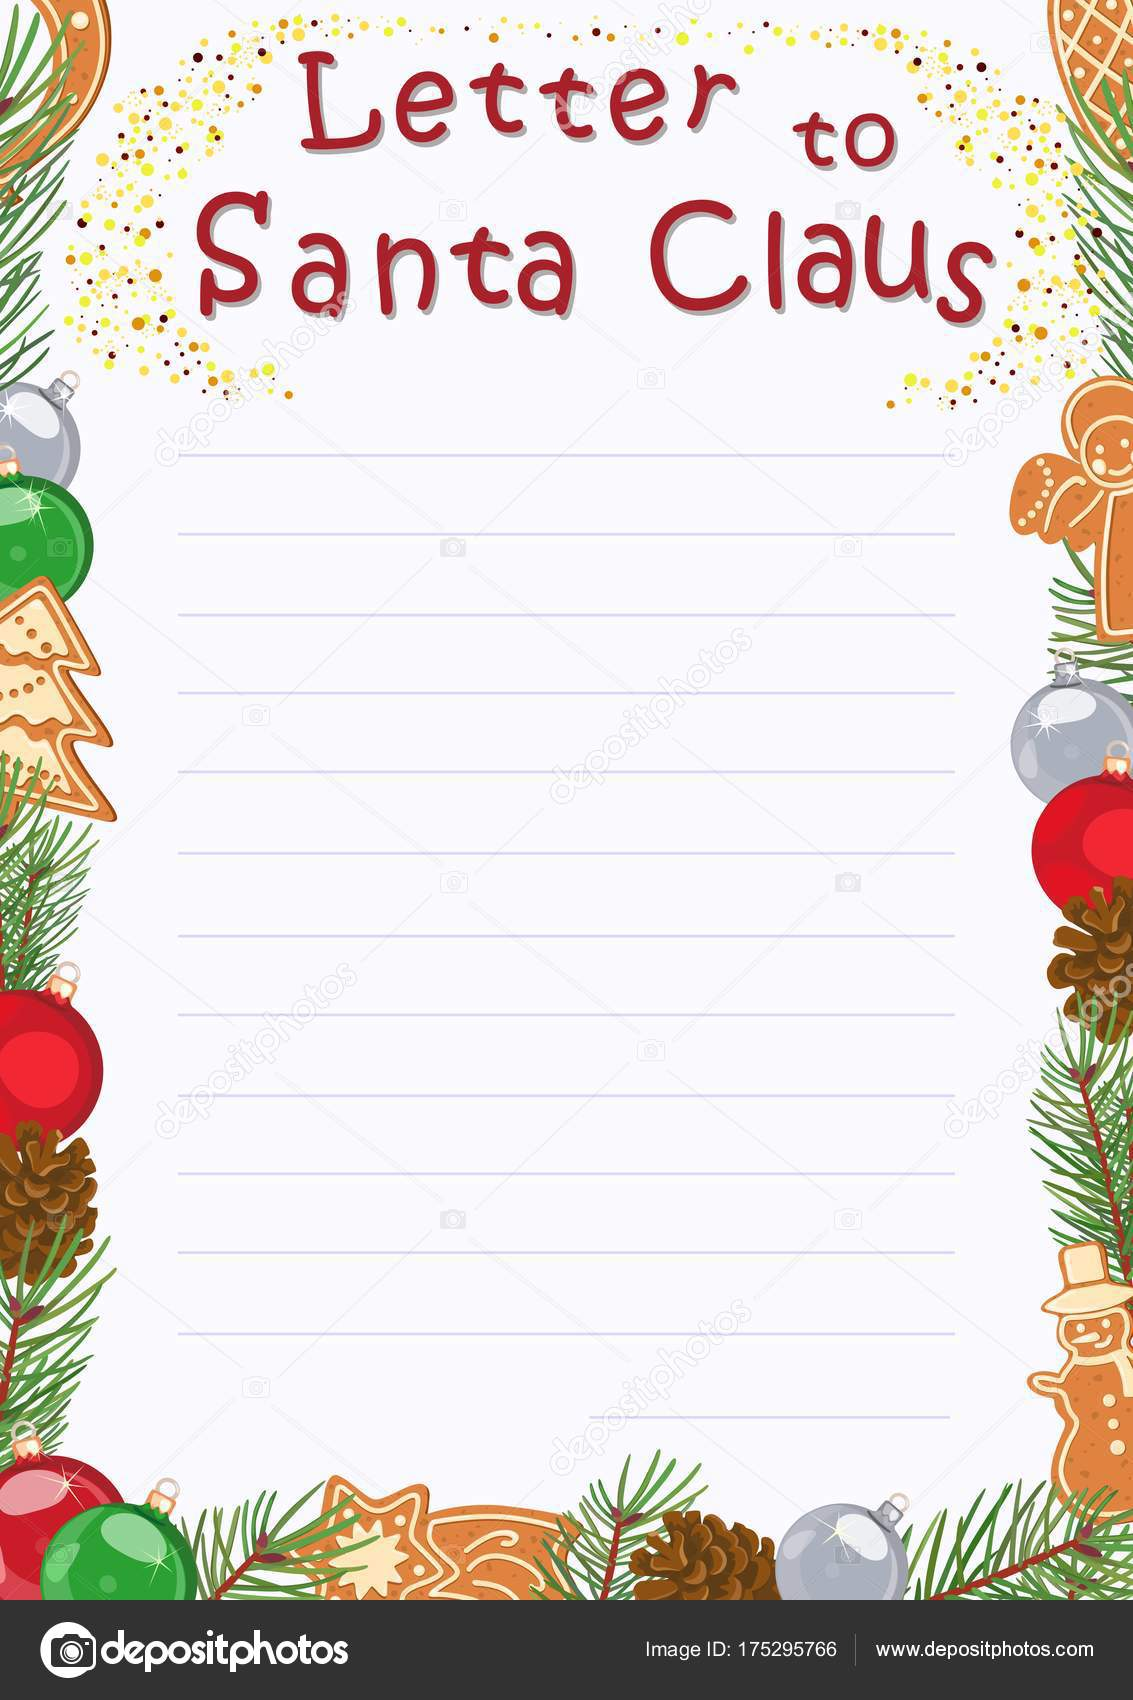 New Year Greeting Card Letter To Santa Claus Vector Illustration